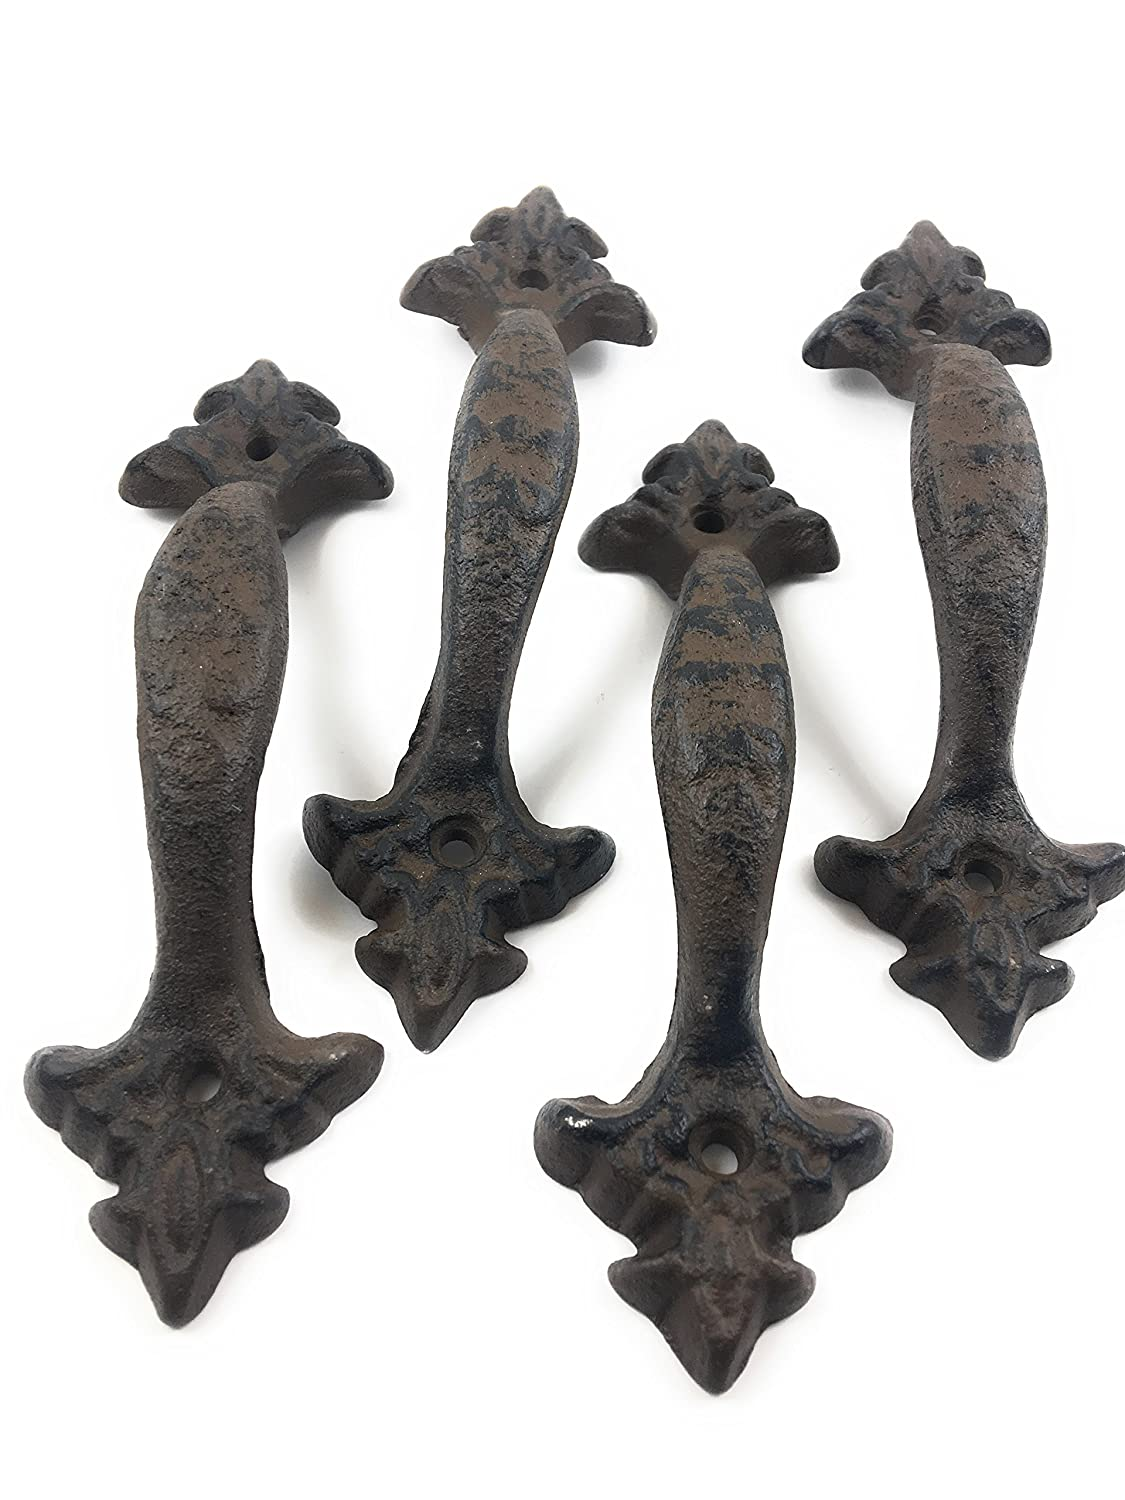 Set of 4 Cast Iron Large & Fancy Antique Replica Drawer Pull / Barn Handle Shabby Chic Vintage Crafts and Decor (Antique Brown /Black)